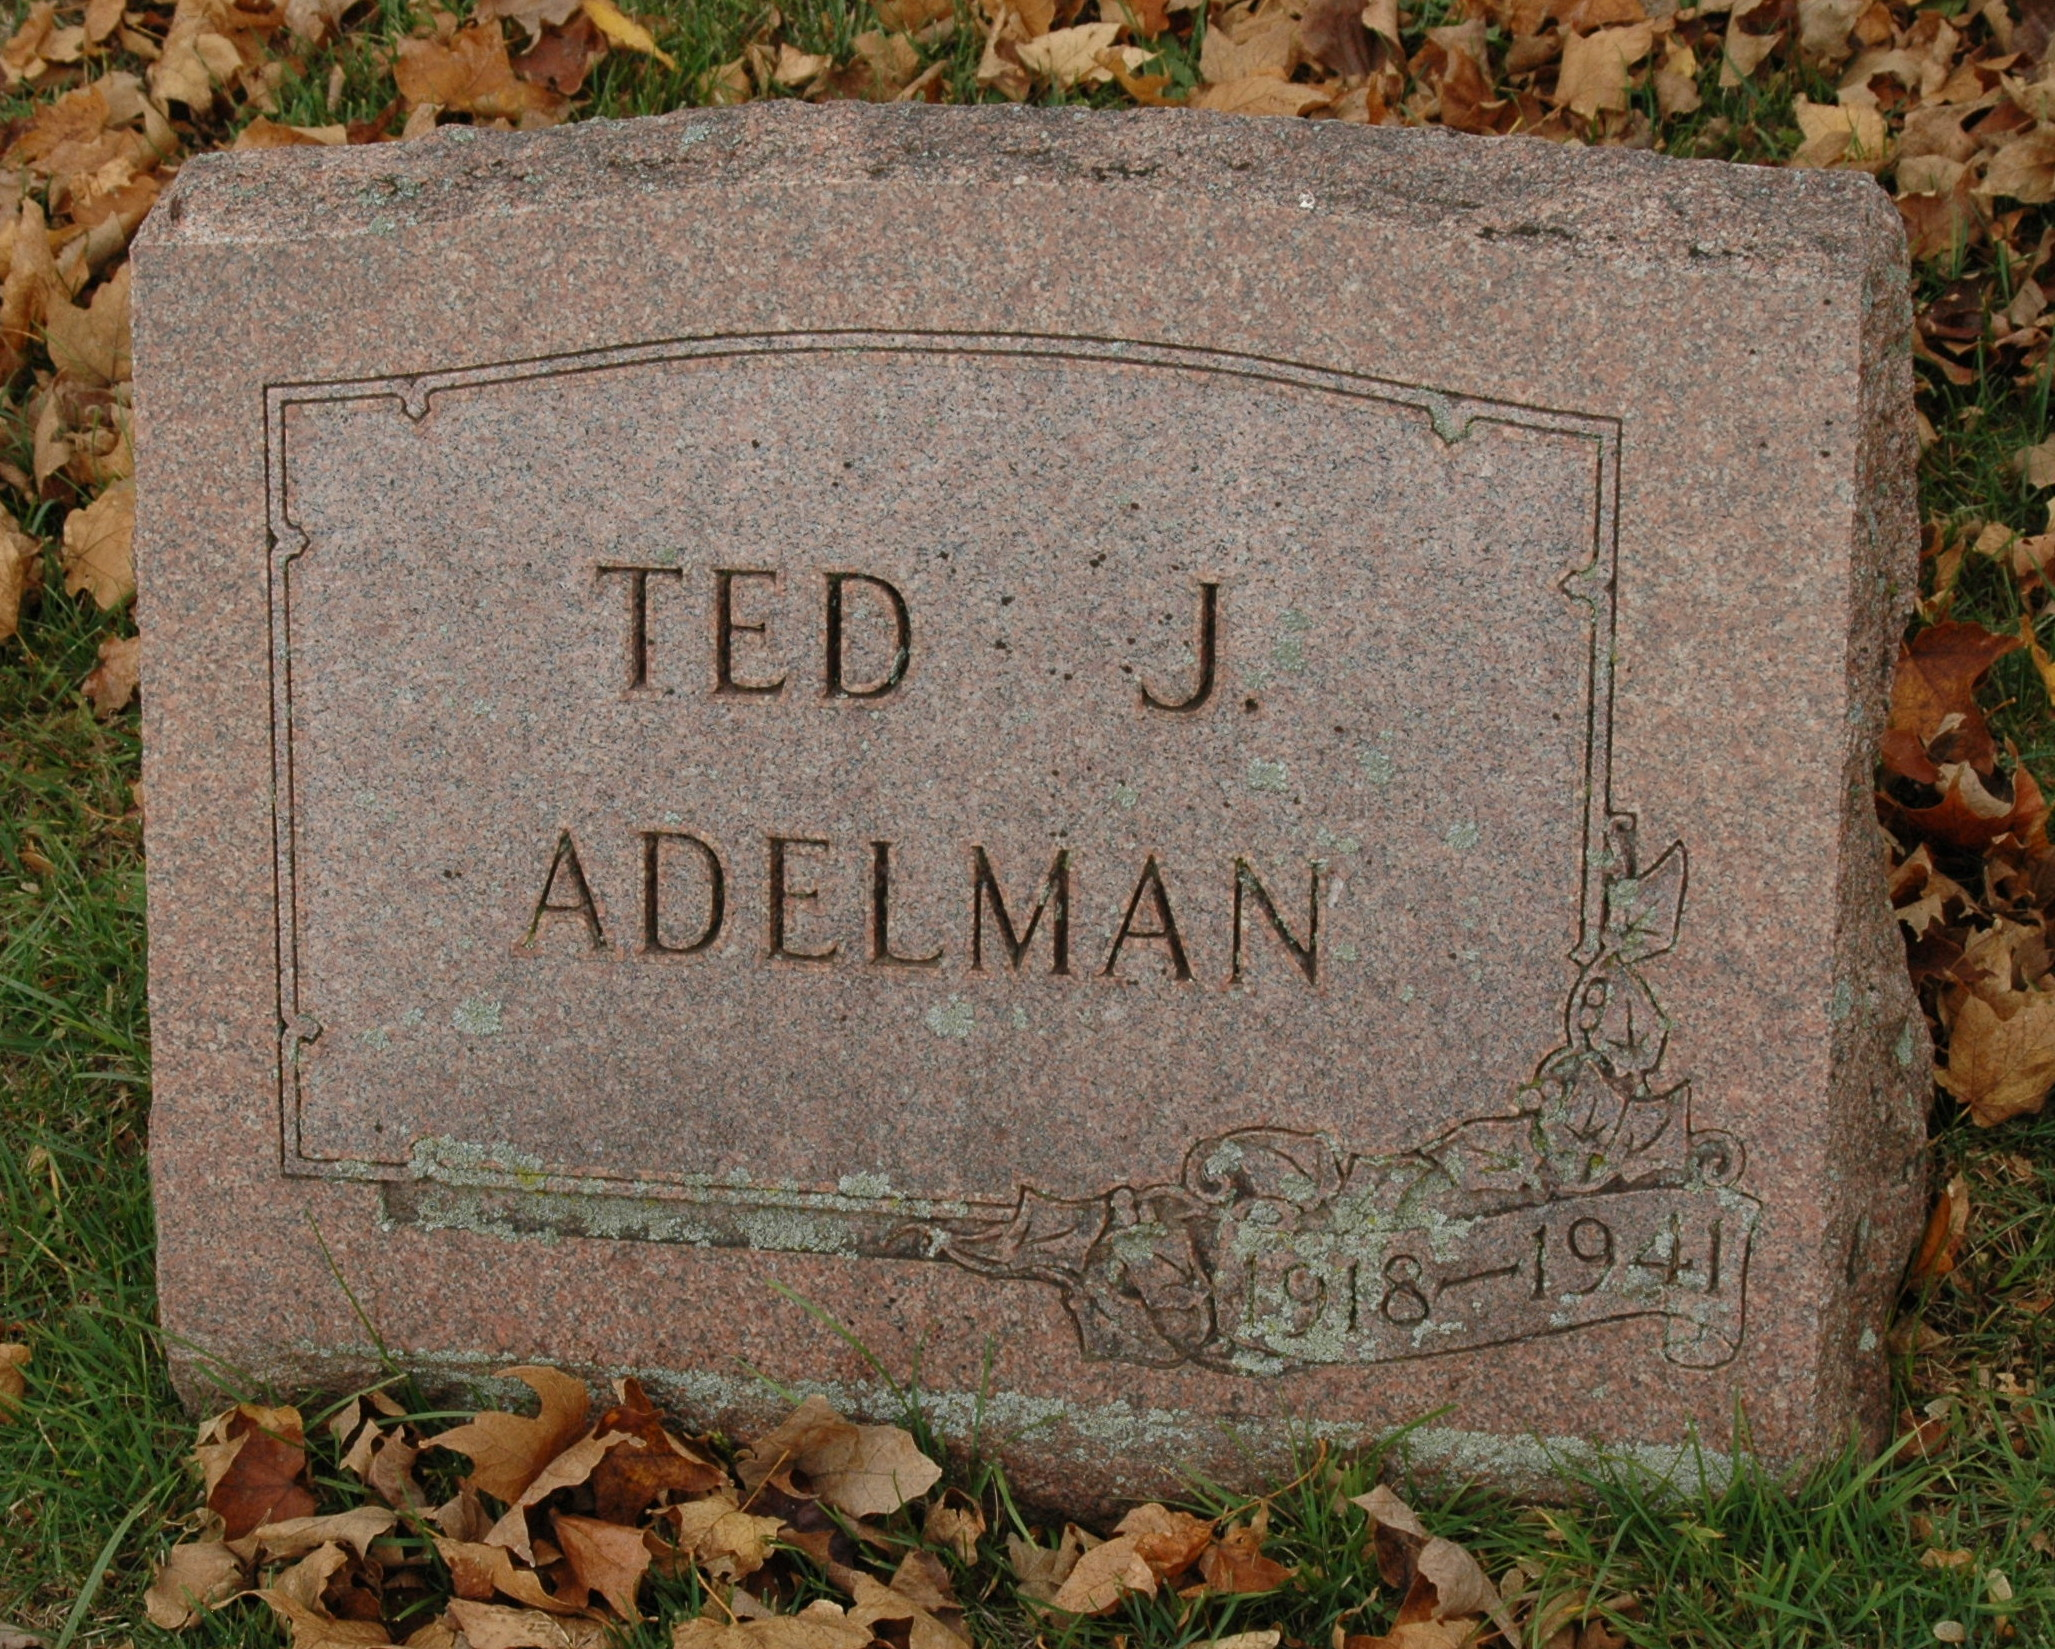 Ted J. Adelman